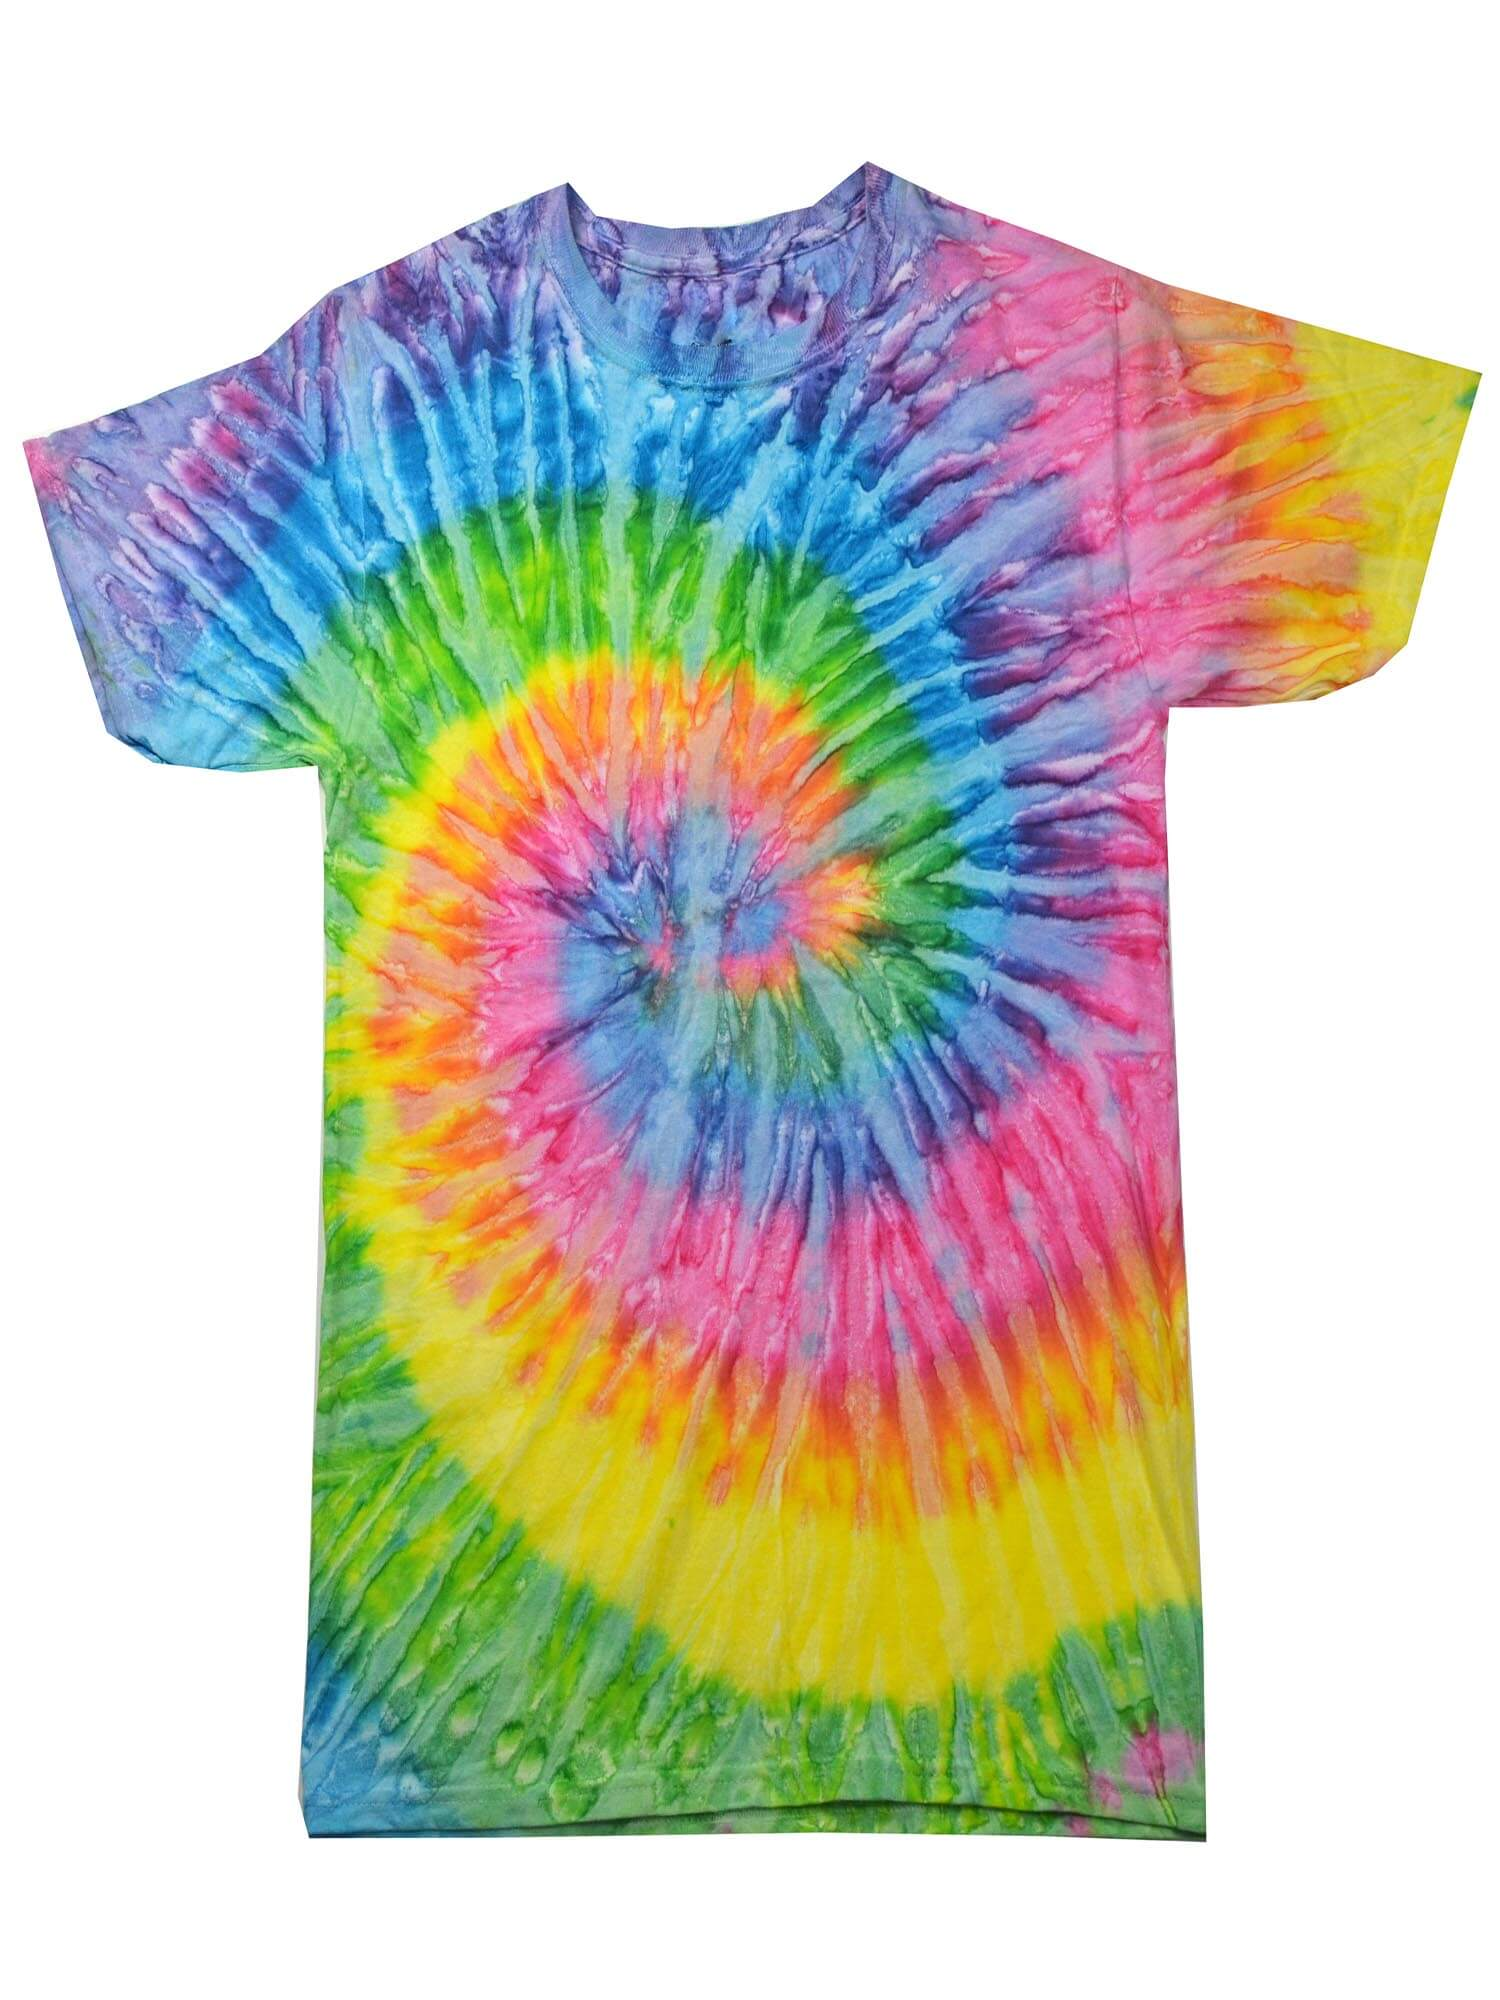 Youth L 14-16 Youth XS Tie Dye T-Shirts 100/% Cotton Multi-Color Rainbow